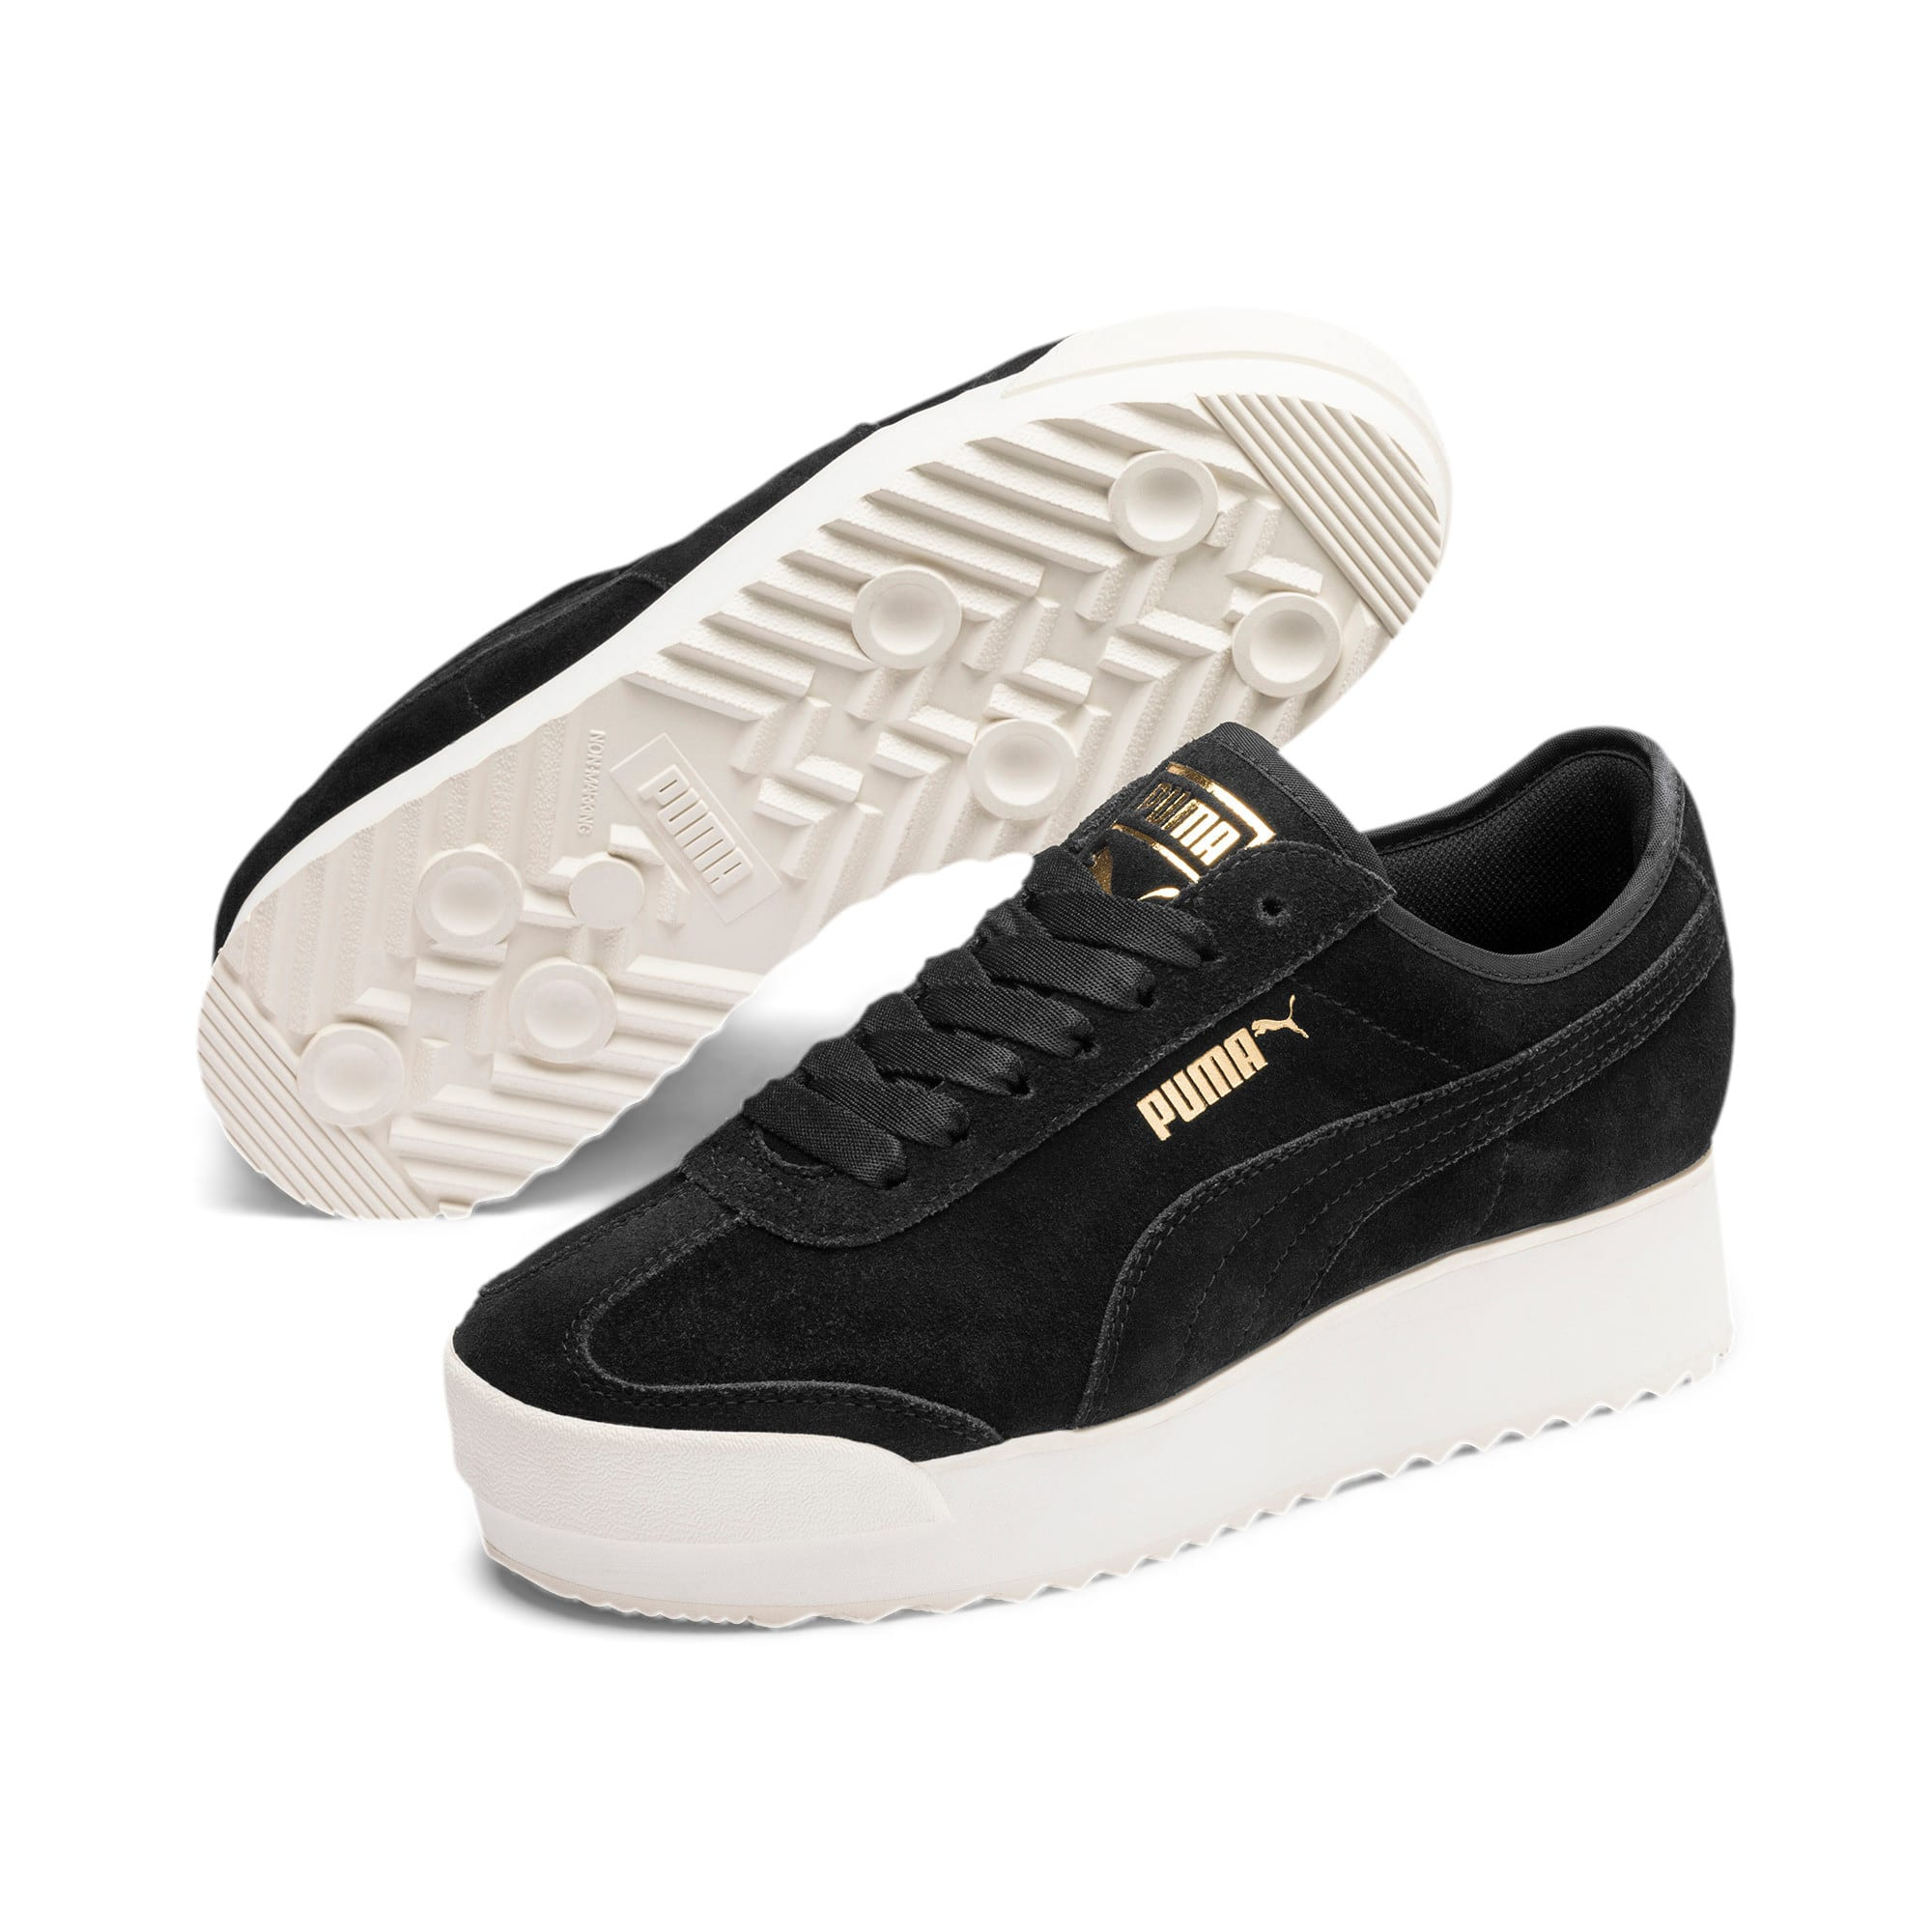 Thumbnail 3 of Roma Amor Suede Women's Sneakers, Puma Black-Puma Team Gold, medium